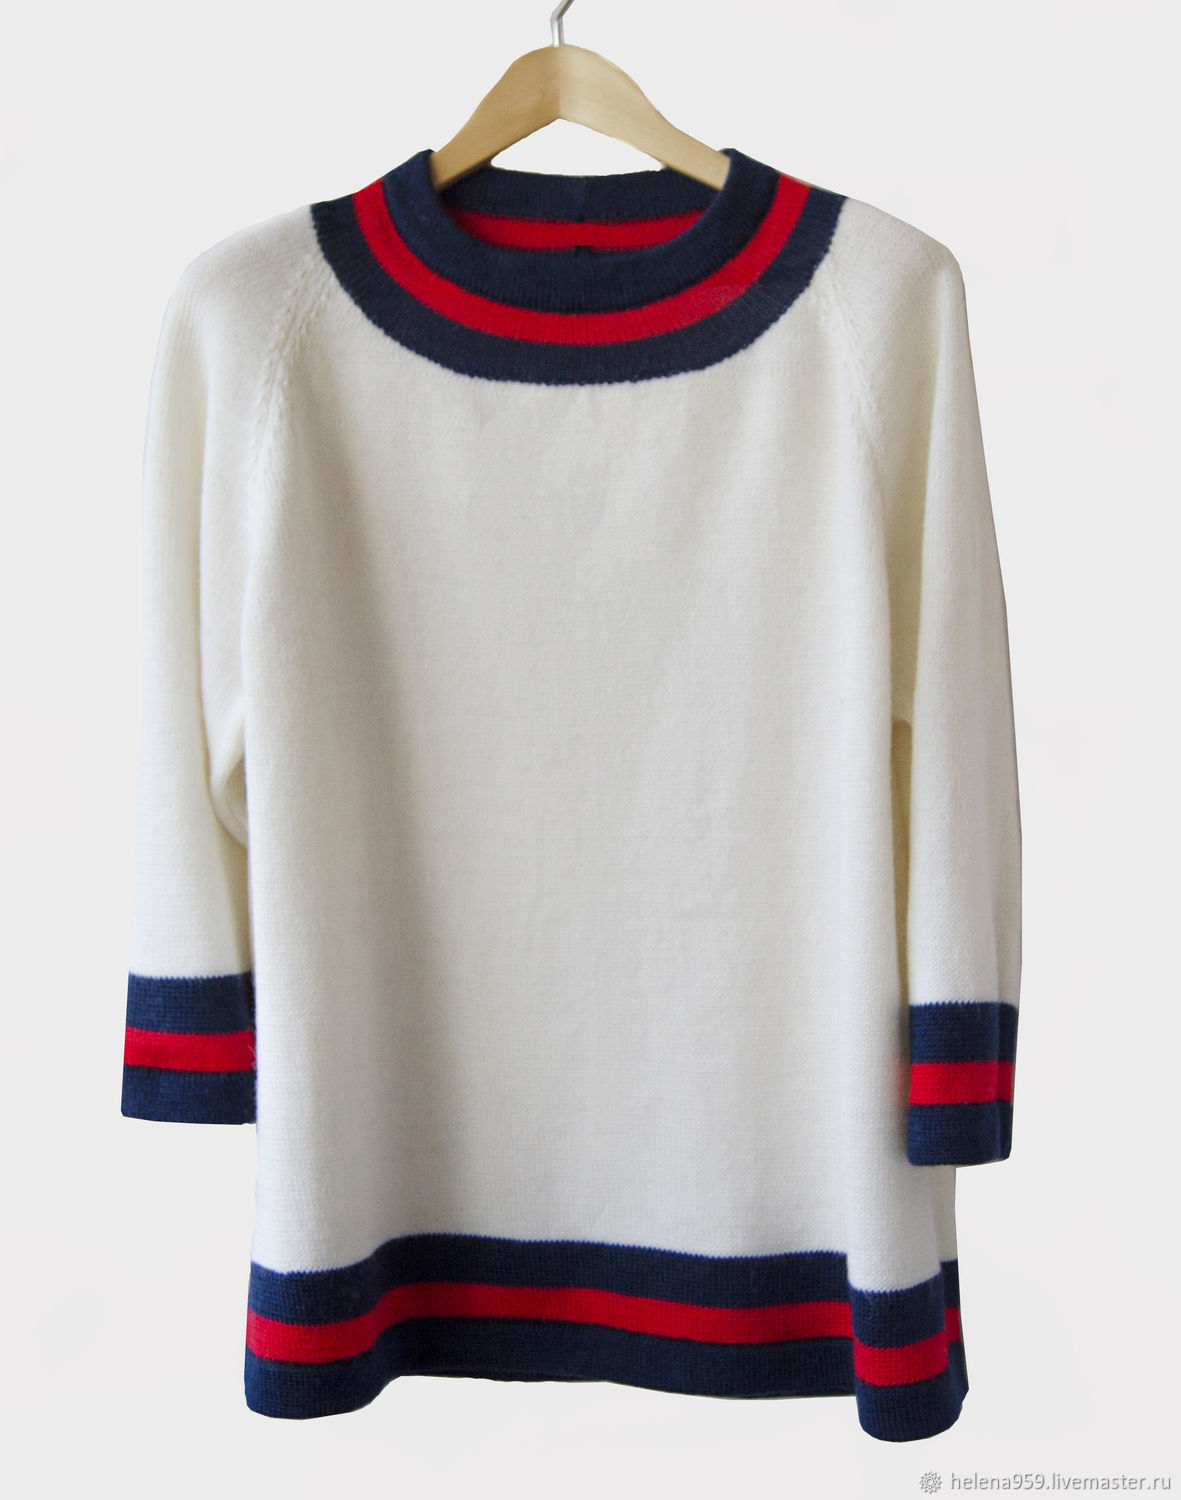 Sweater with round colored neck of blue and red stripes, Sweaters, Ulyanovsk,  Фото №1